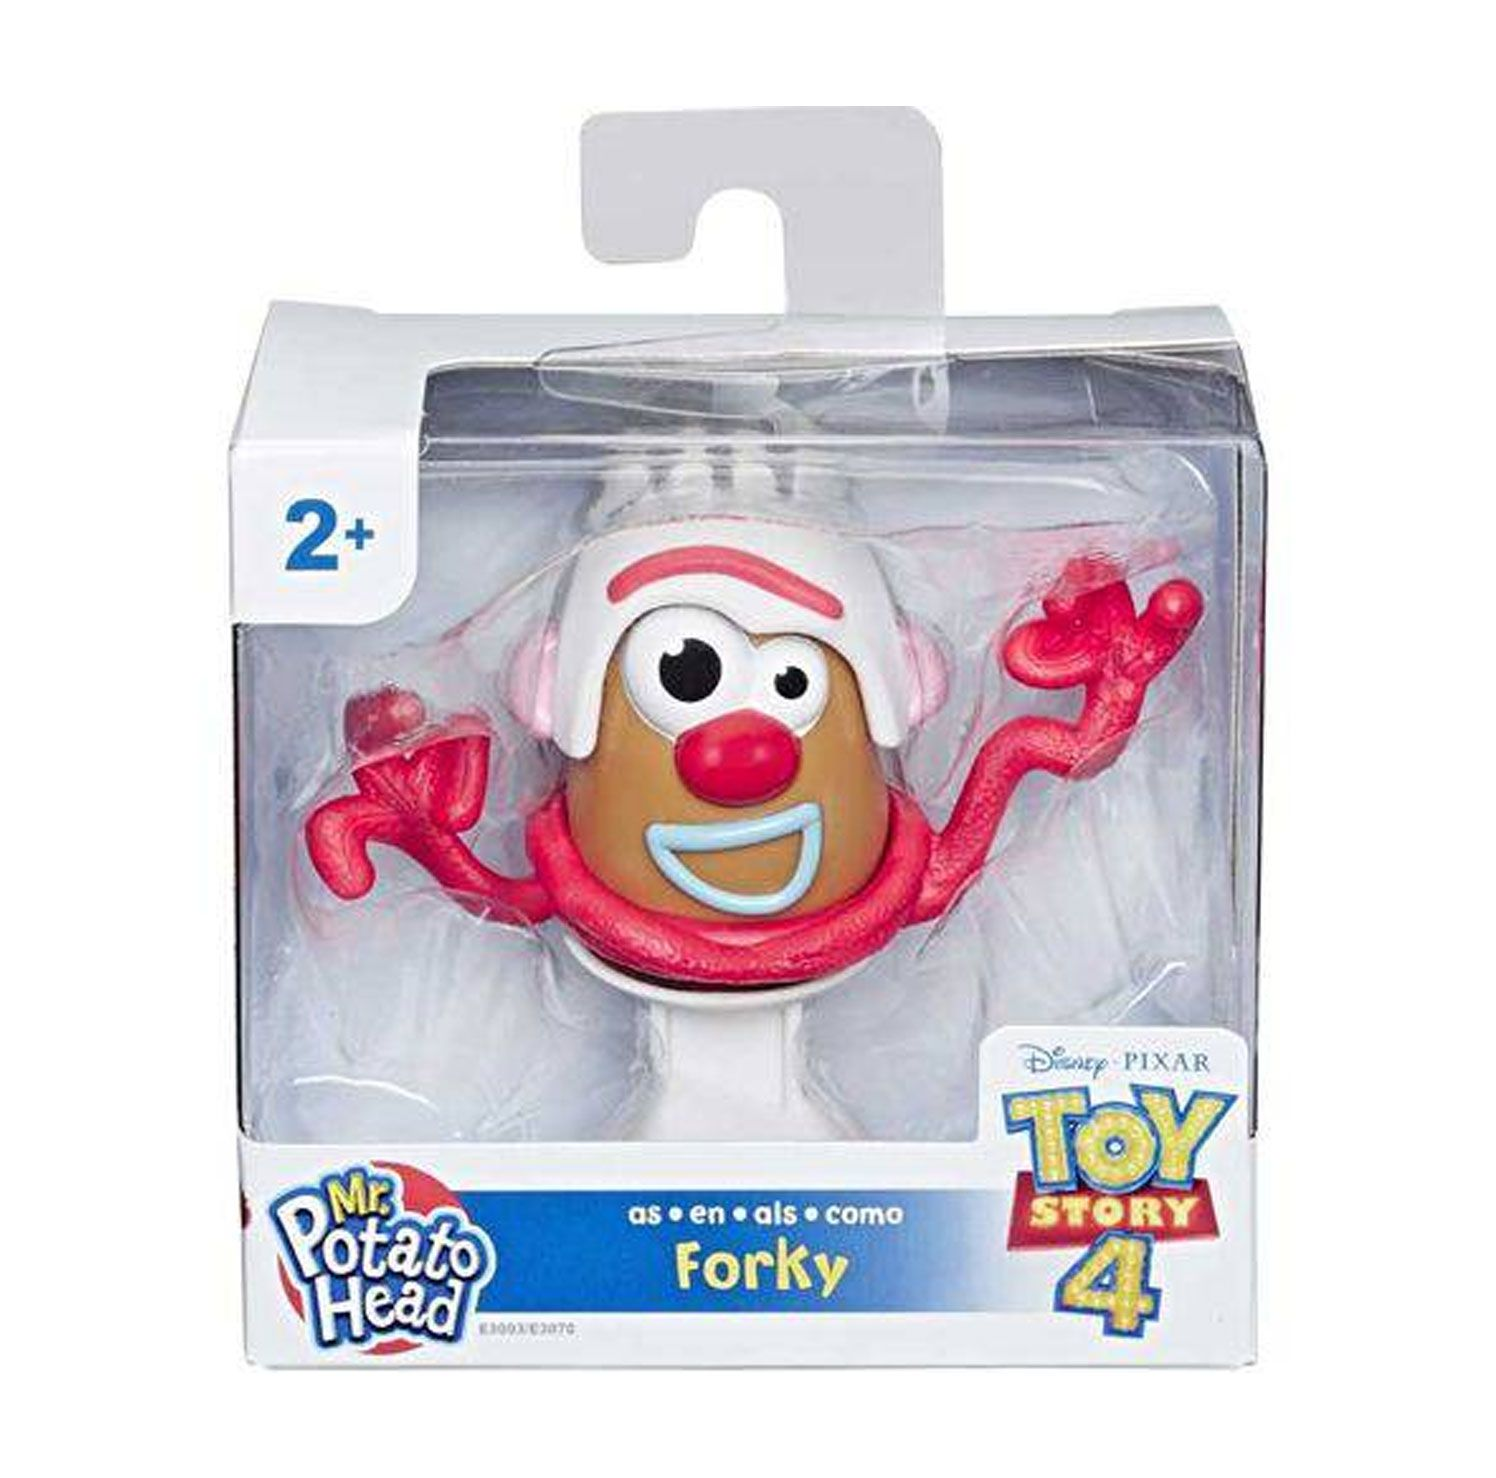 BONECO FORKY MR POTATO HEAD TOY STORY 4 HASBRO REF:3070